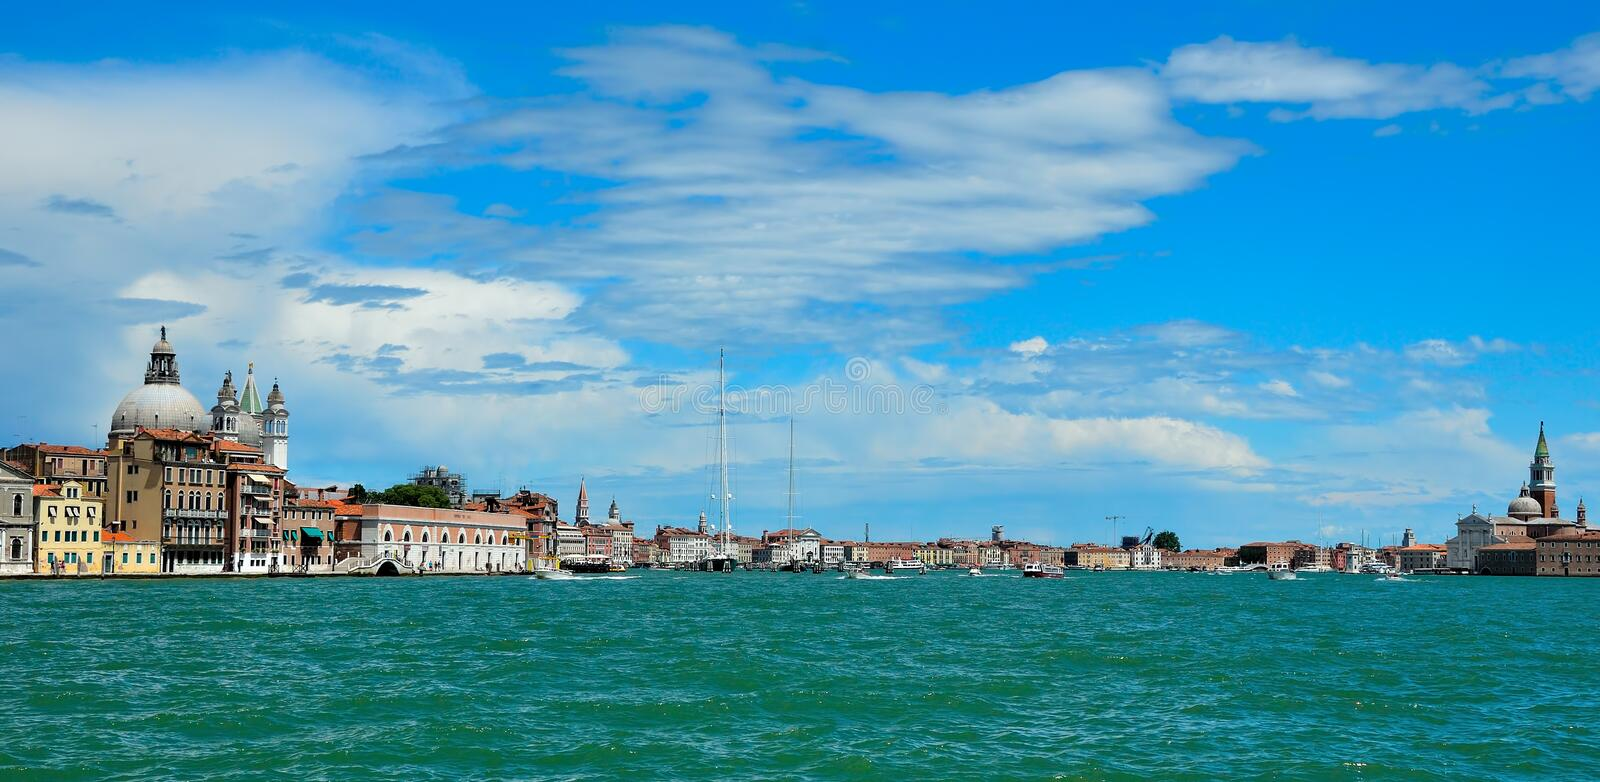 Download Seaview of Venice, Italy stock image. Image of campanile - 16676661